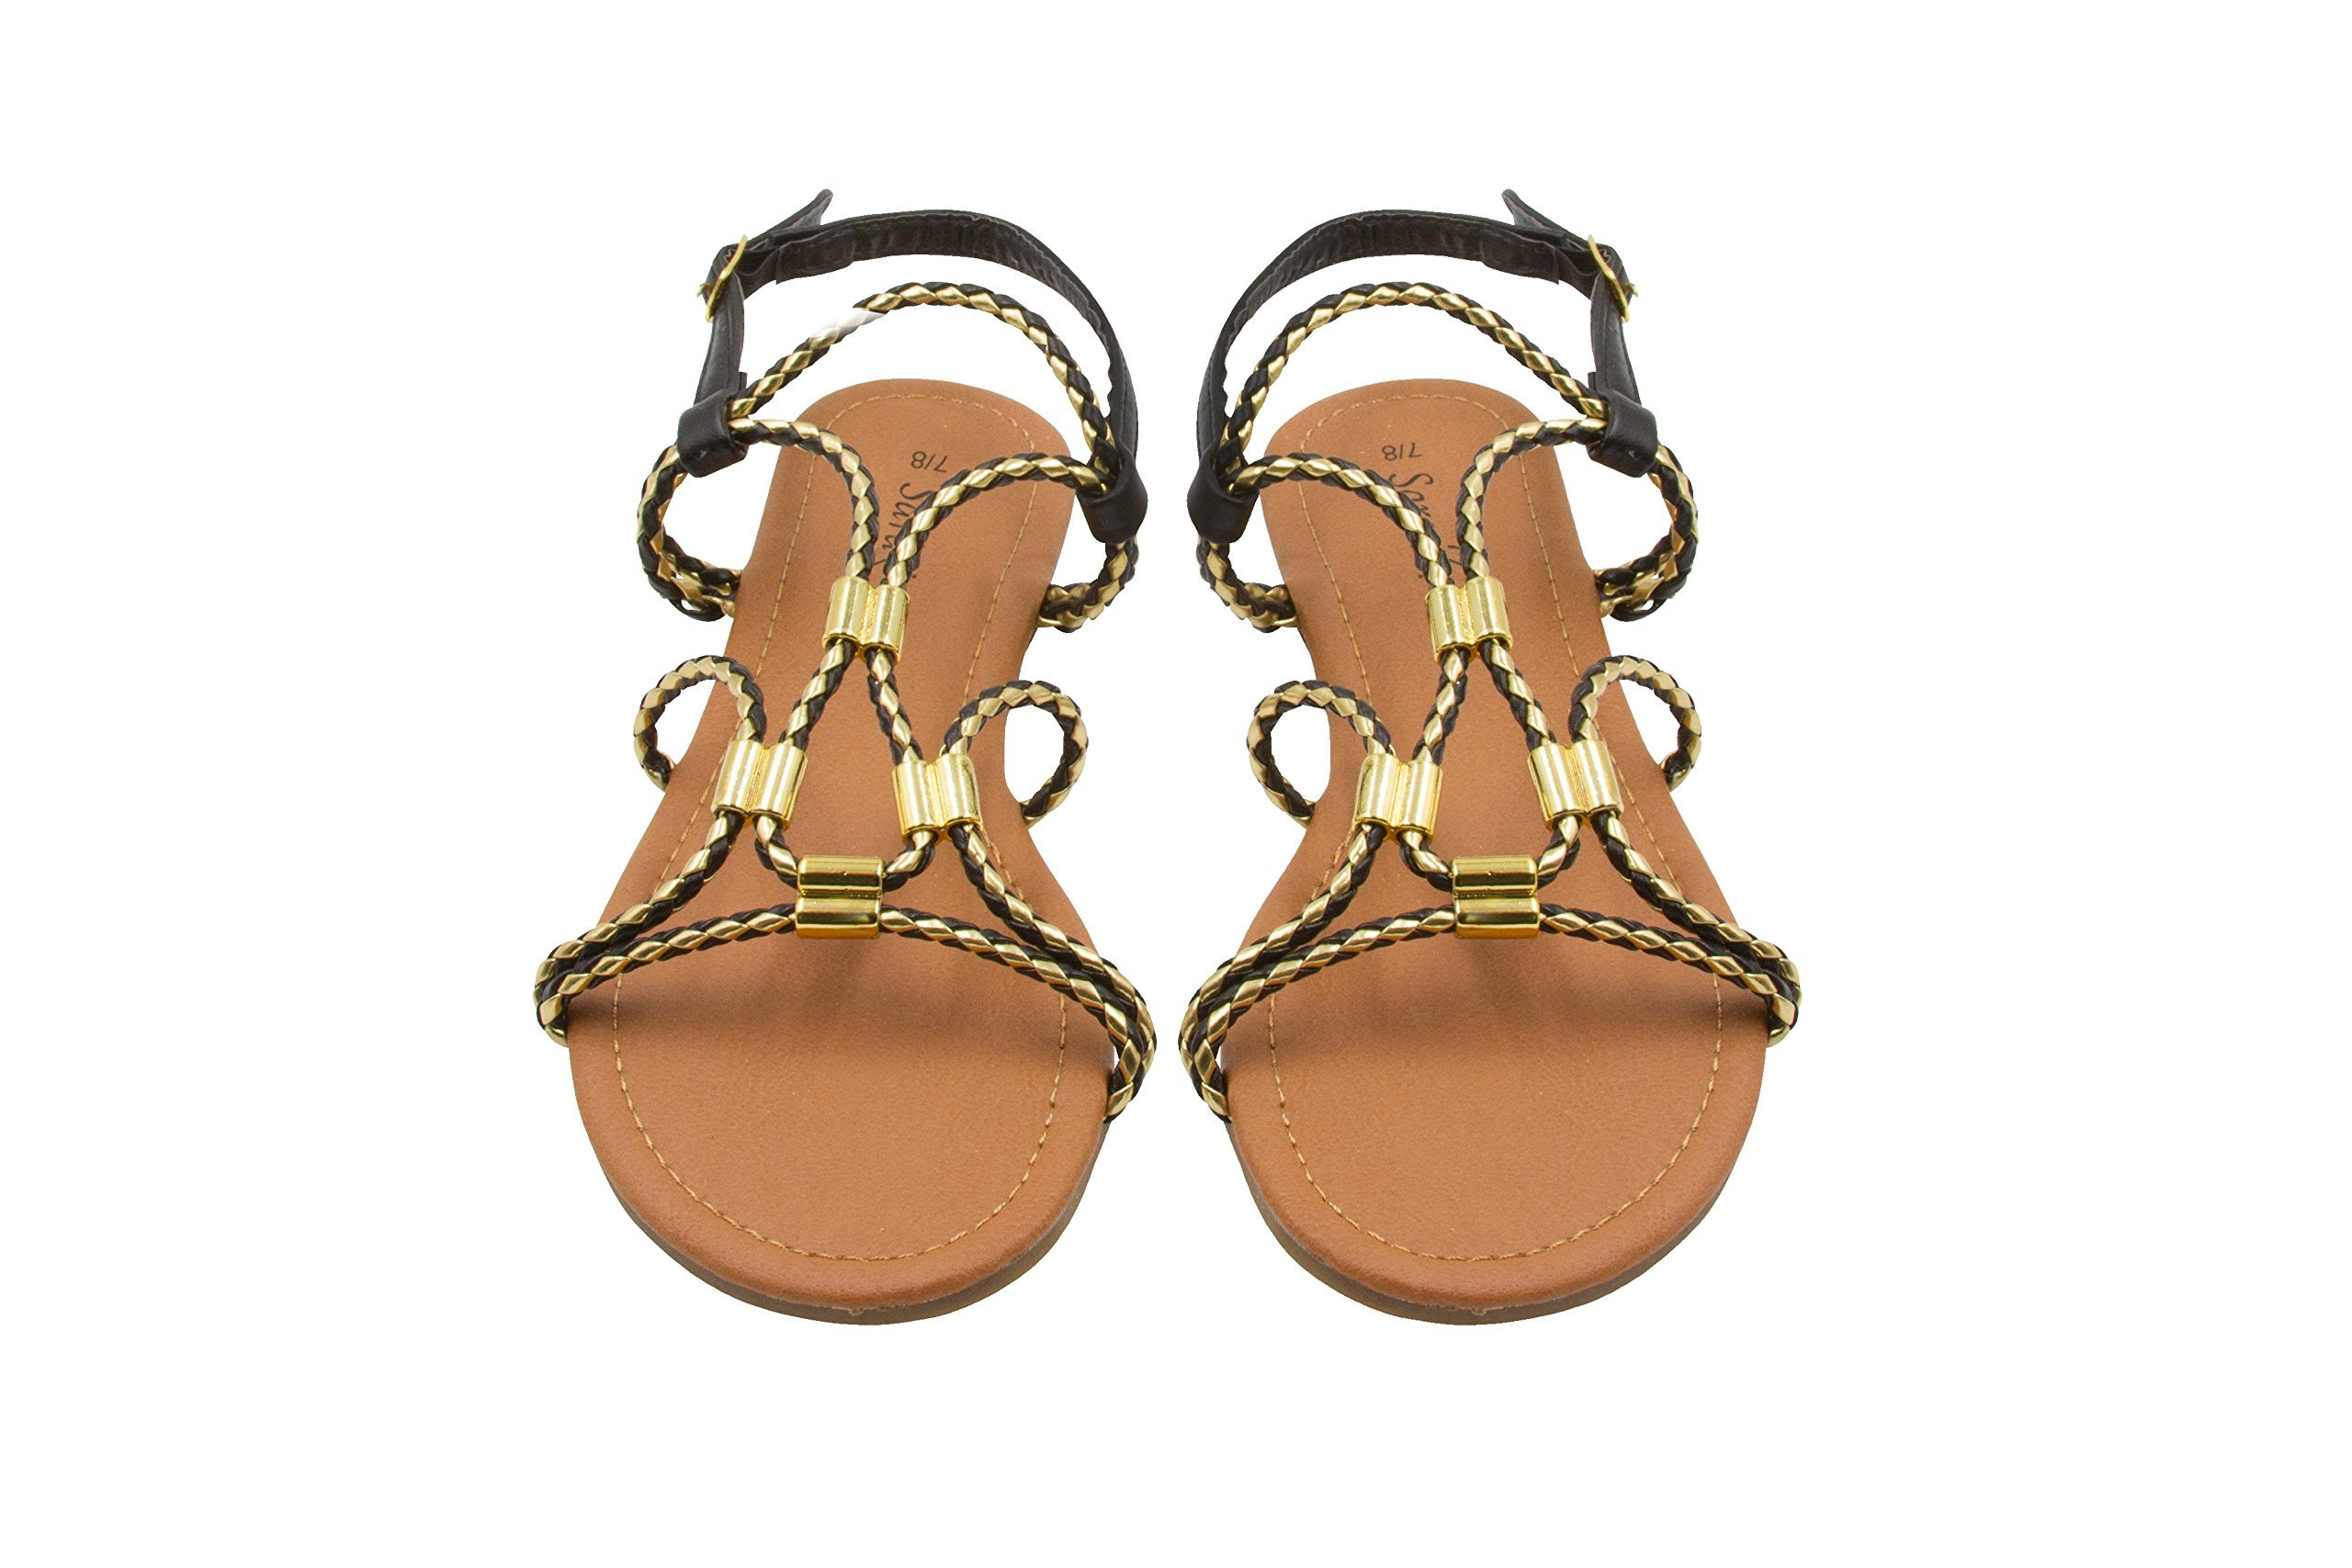 Sara Z Ladies Gladiator Sandal With Woven Metallic Straps and Metal Accents 5/6 Black/Gold